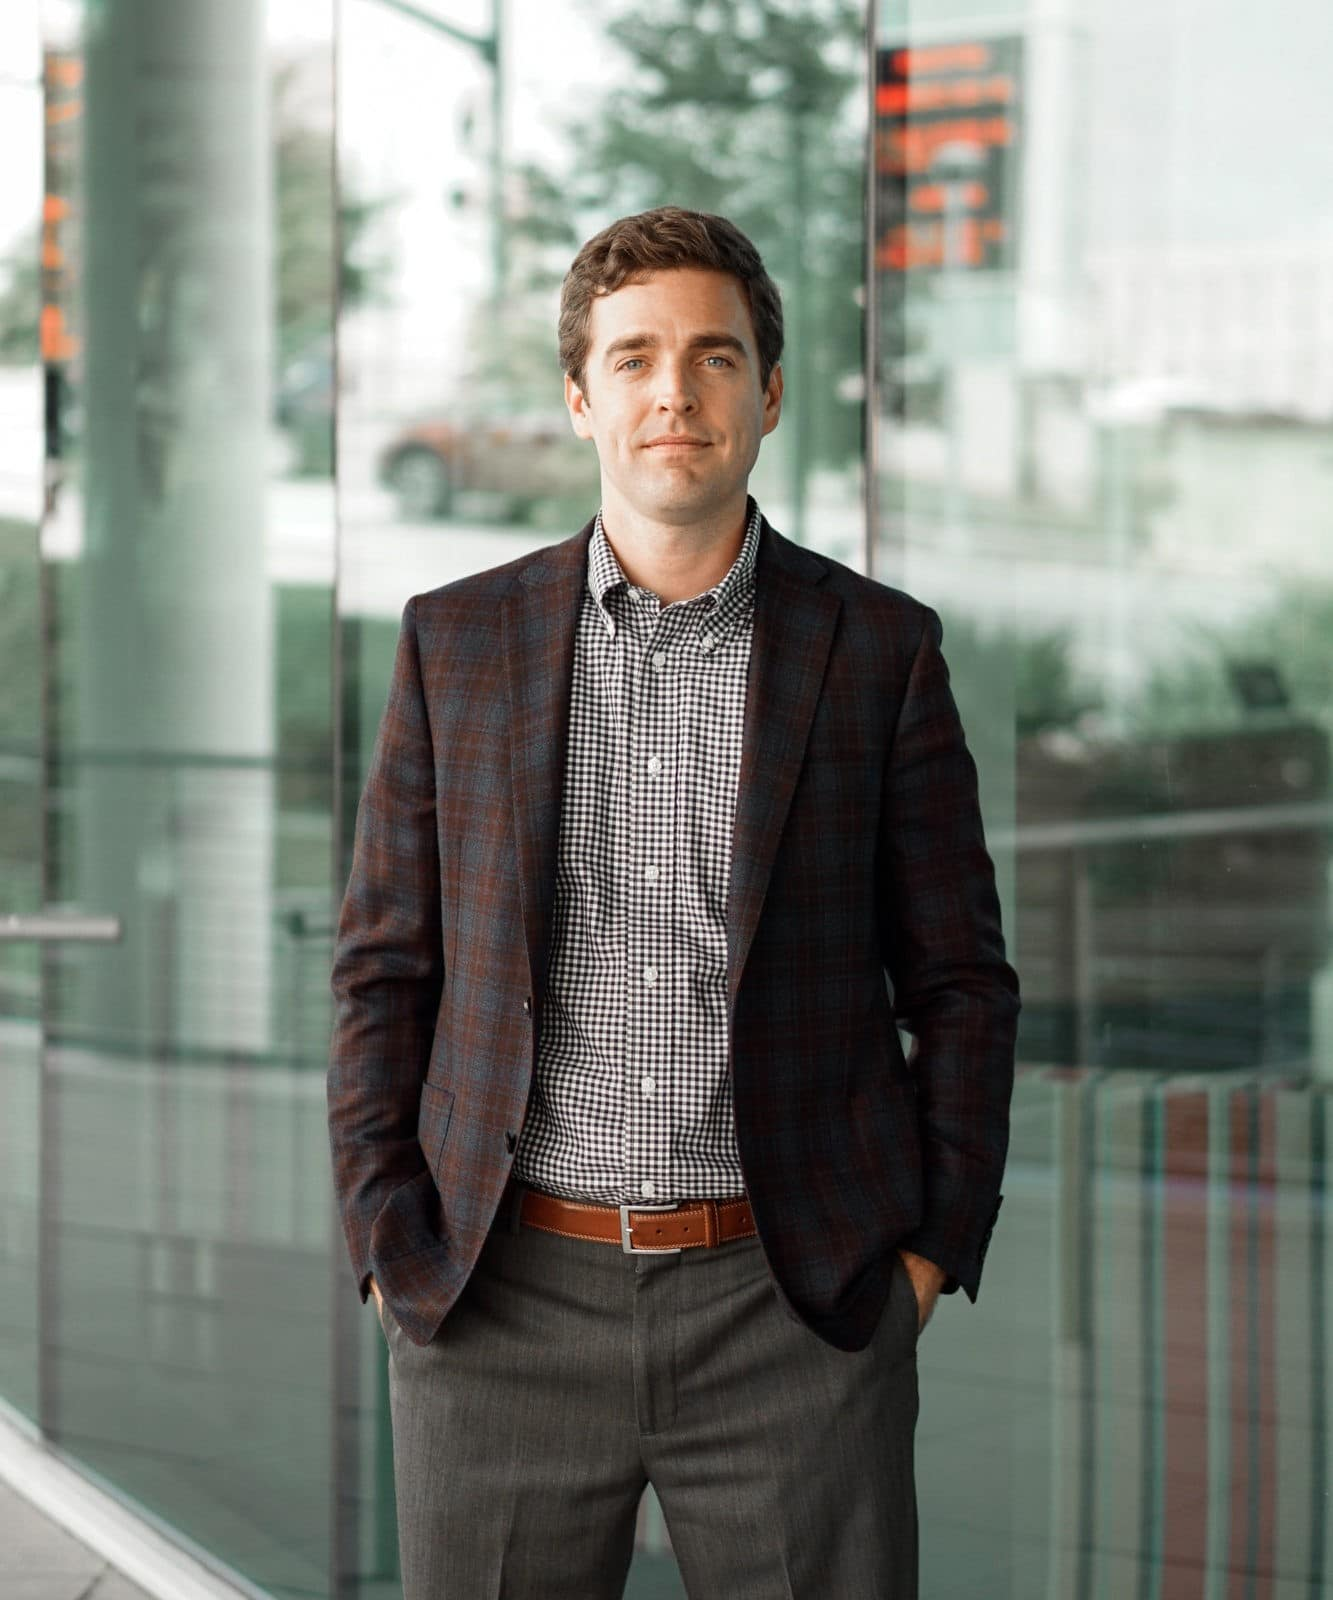 Austin Rhodes is the president and co-founder of Rhodes Branding.